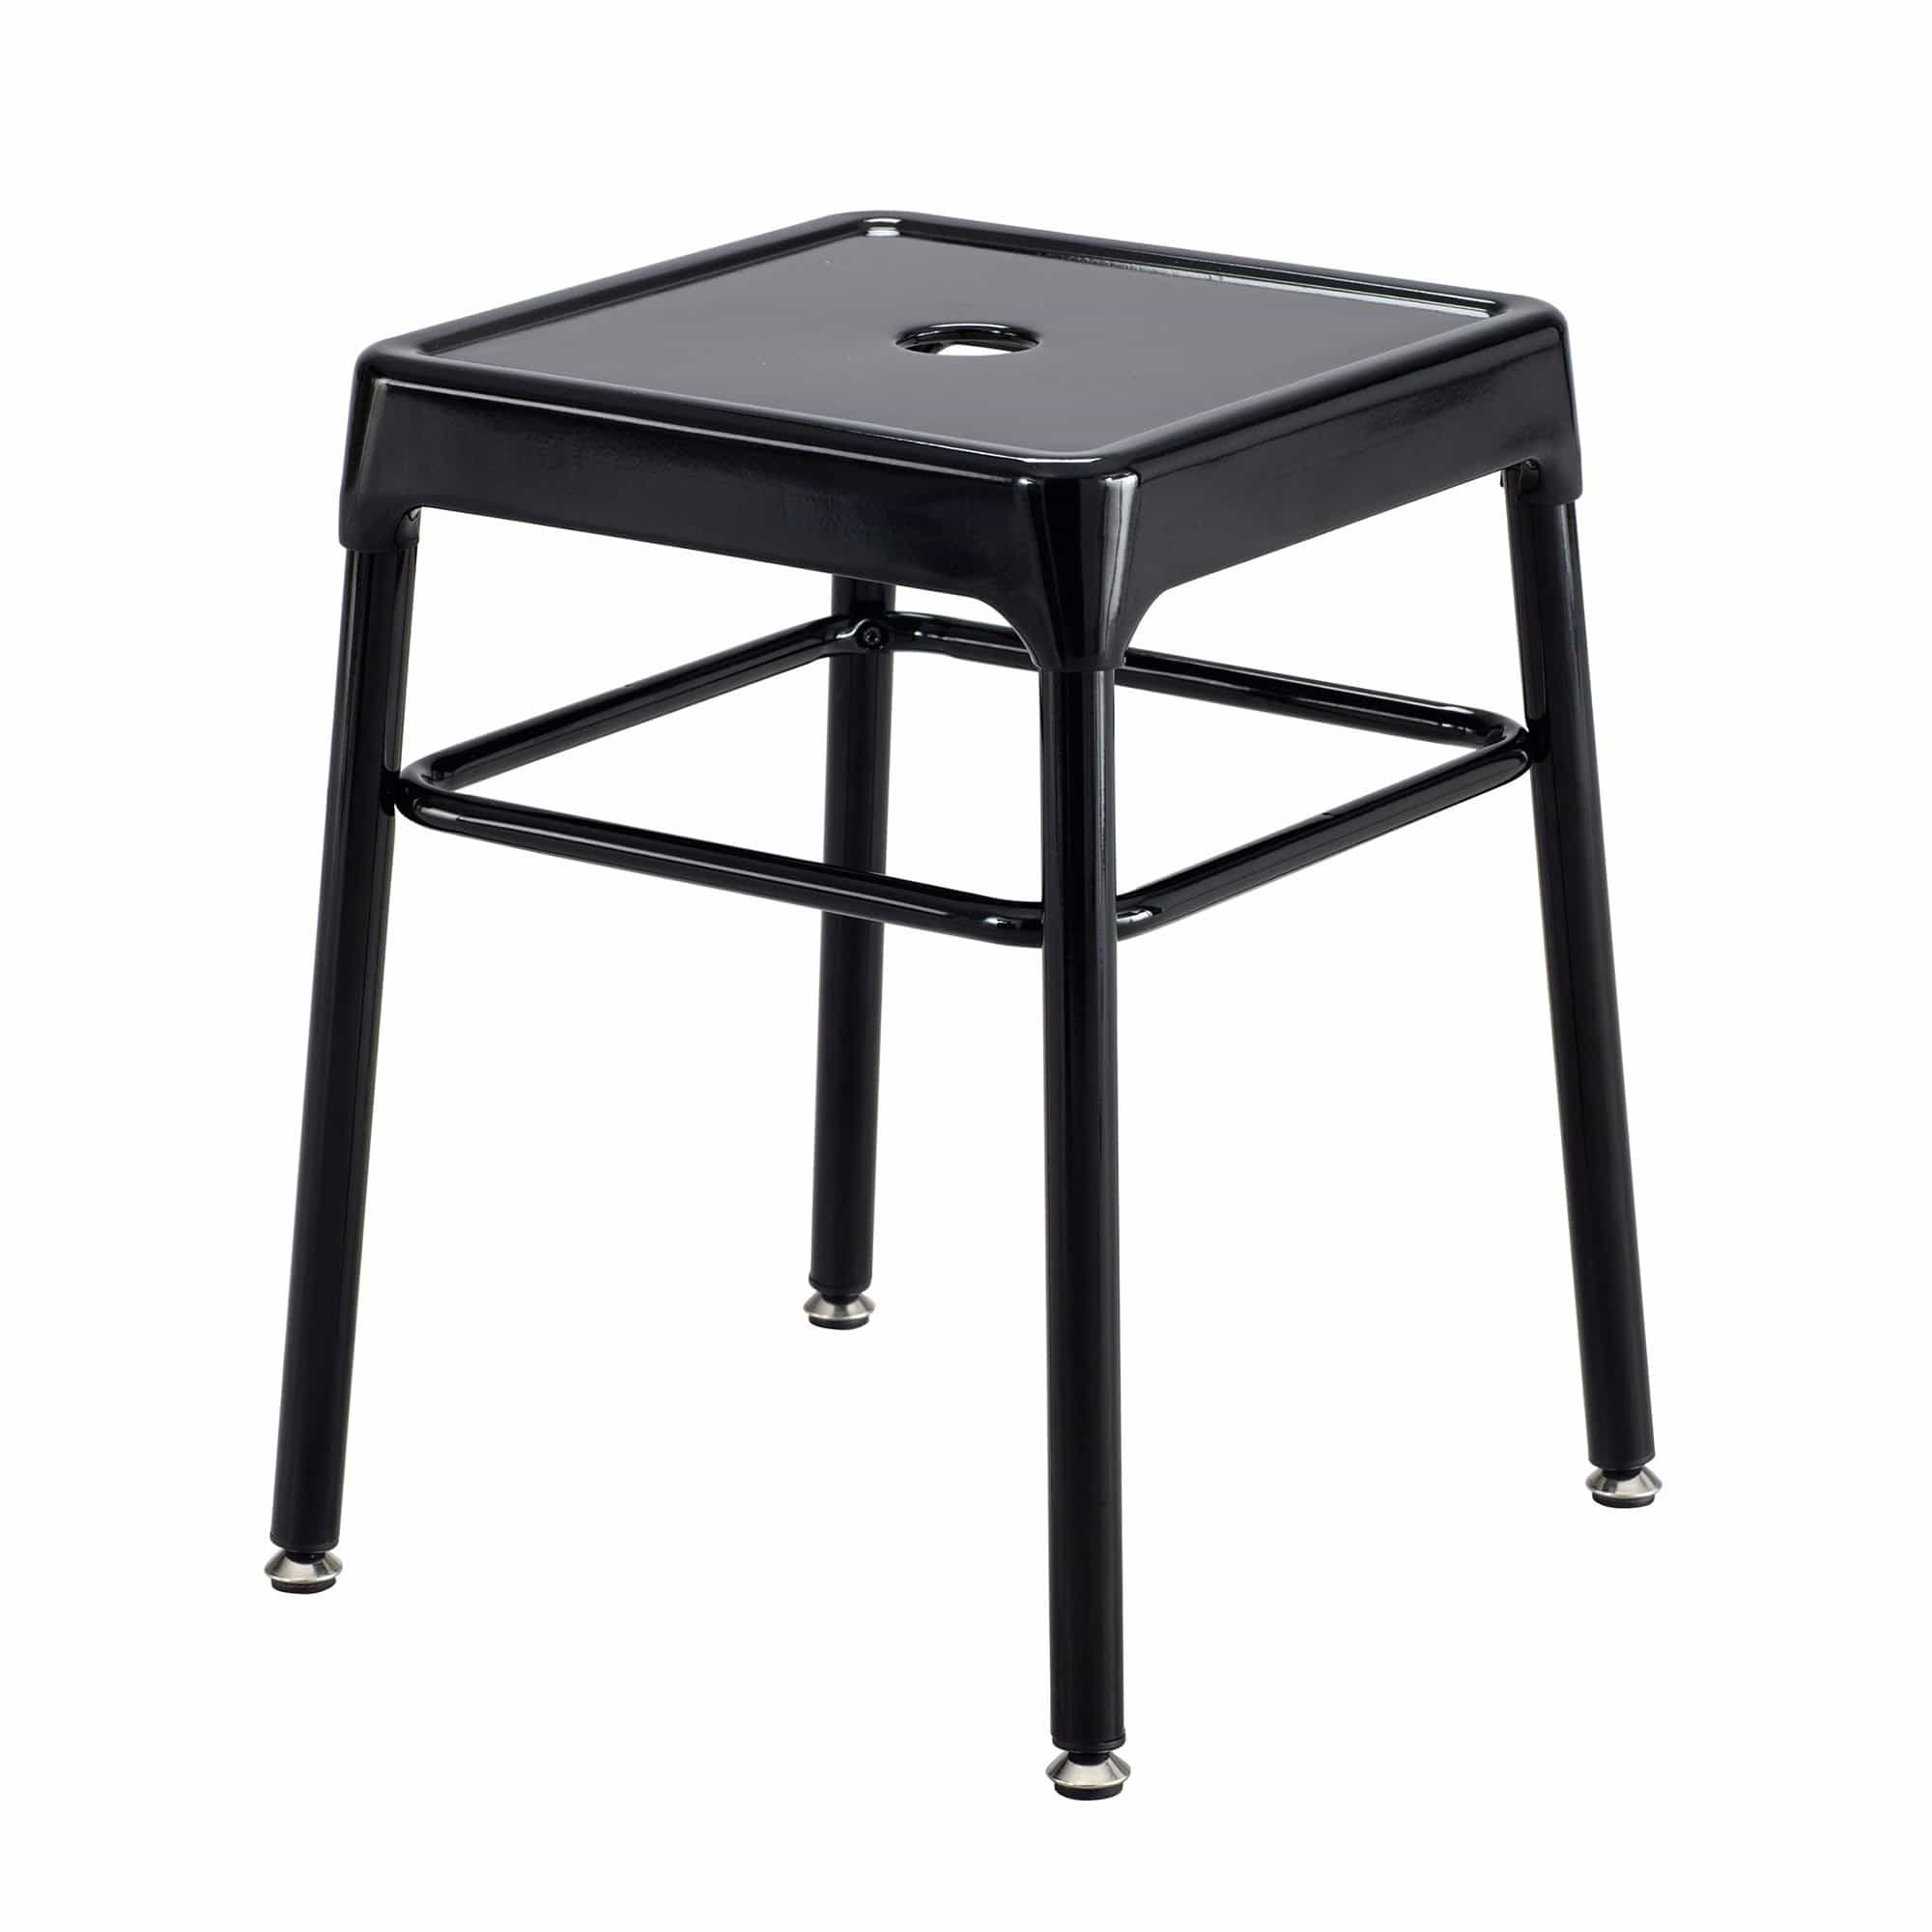 bedinhome - 6604BL Safco® Workspaces 250 Lbs Capacity Nylon Leg Caps Glides Hole on Top Steel Guest Height Black Stool - Safco - Steel Guest Stool